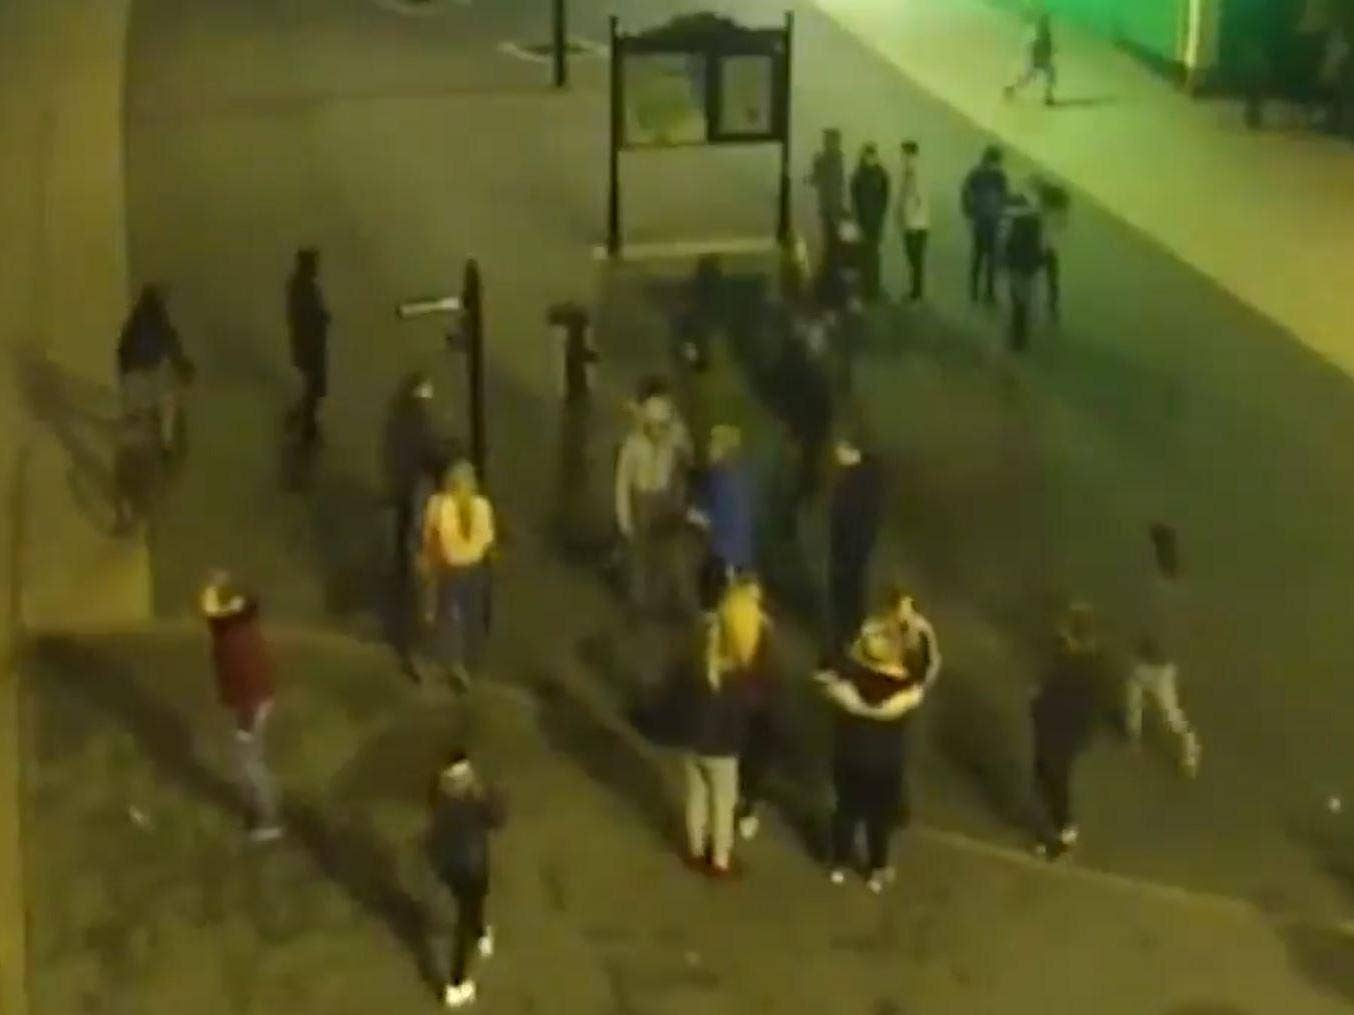 Police Mobbed By 100 Youths Throwing Bricks And Fireworks In Durham